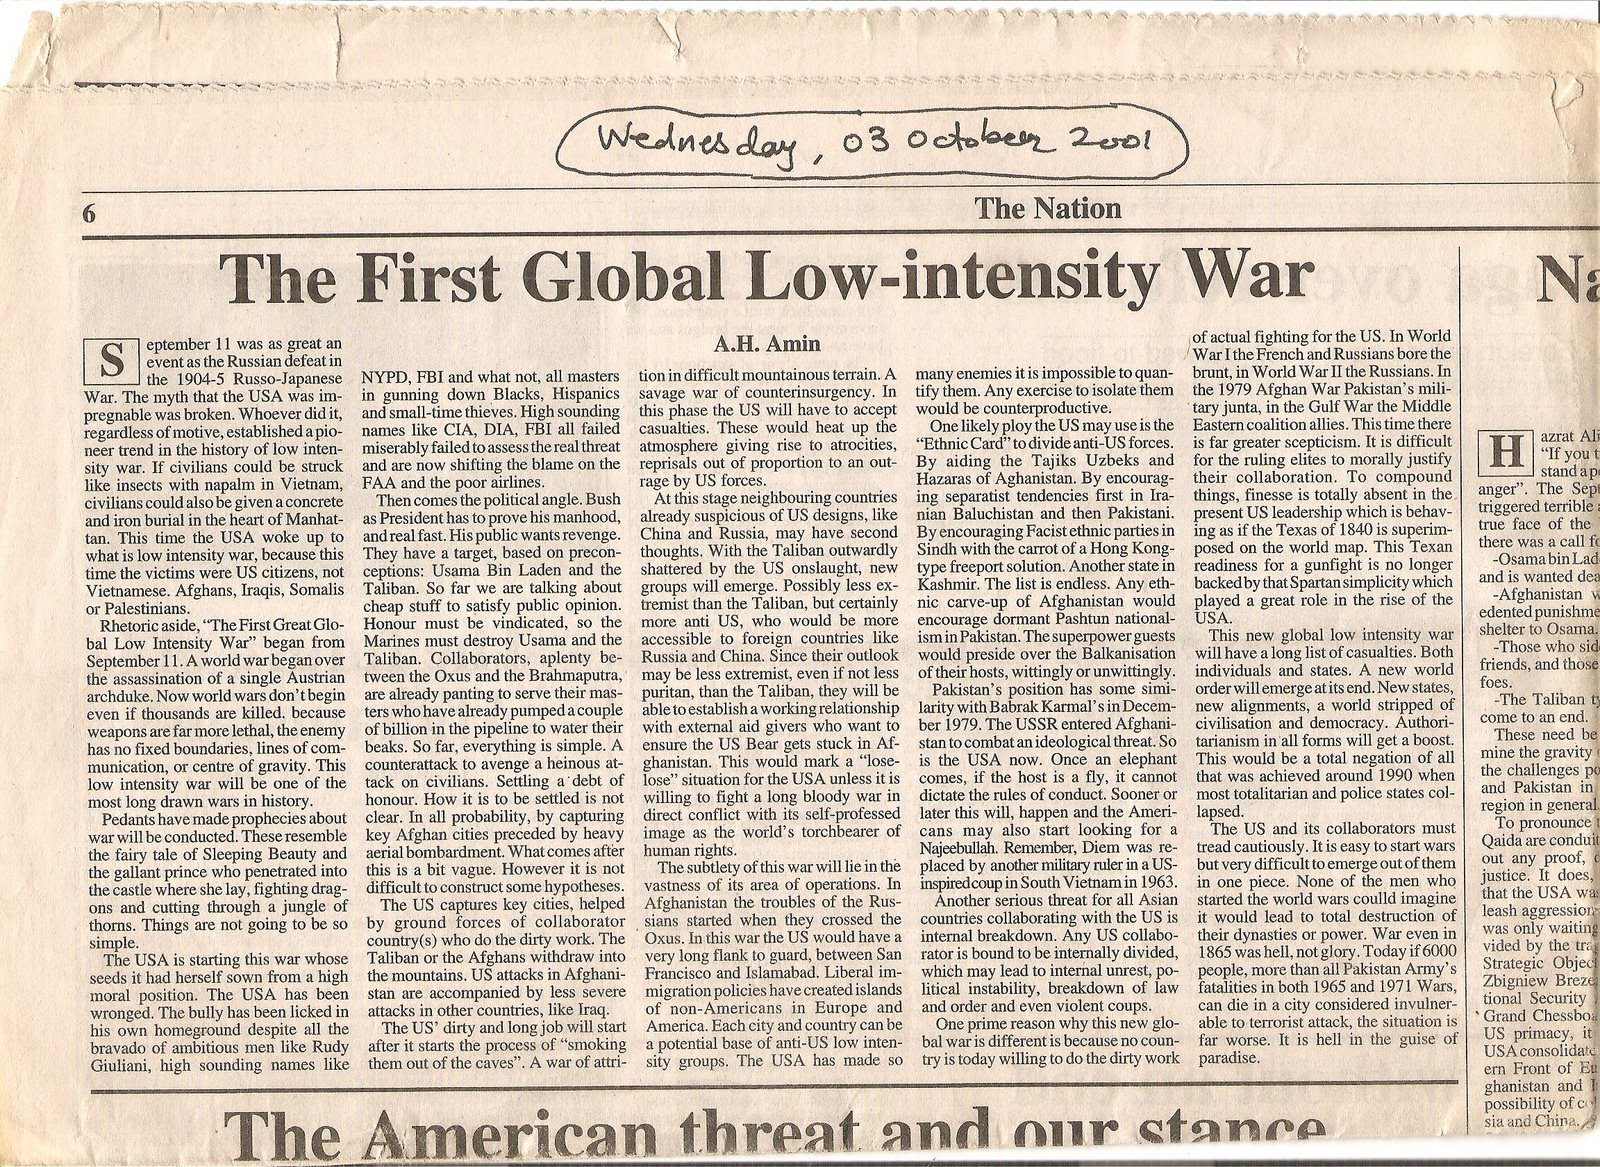 A STRATEGIC ASSESSMENT OF FUTURE WAR MADE 15 DAYS AFTER 9-11-CLICK ON PICTURE  BELOW  TO READ